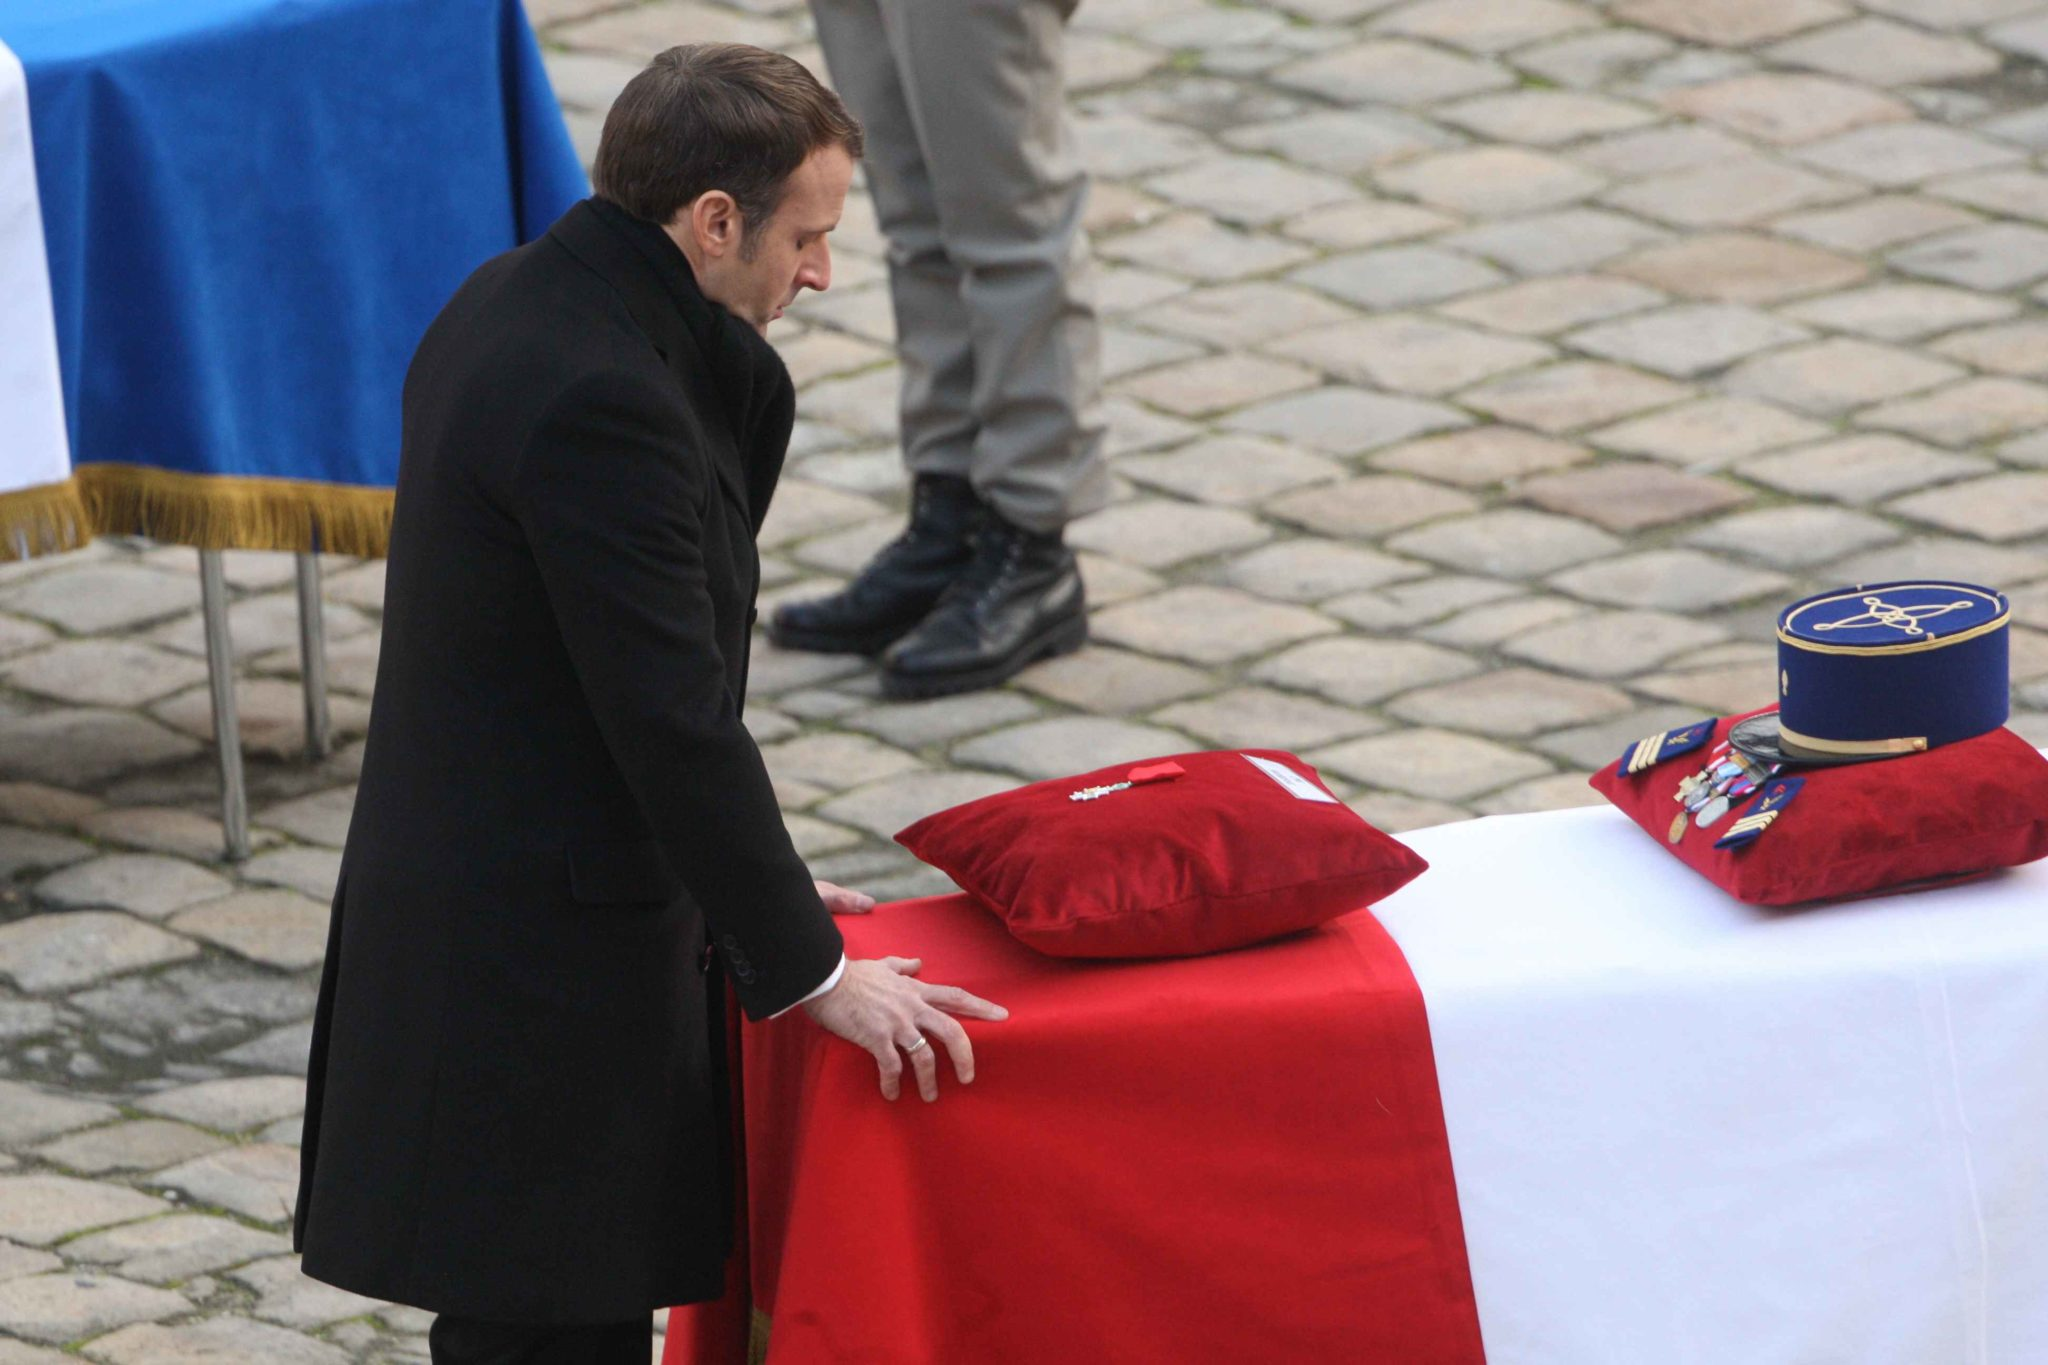 French President Emmanuel Macron touches the coffin after posthumously awarding a soldier with the Legion of Honor during a tribute ceremony on December 2, 2019 at the Invalides monument, in Paris, for the 13 French soldiers killed in Mali. In its biggest